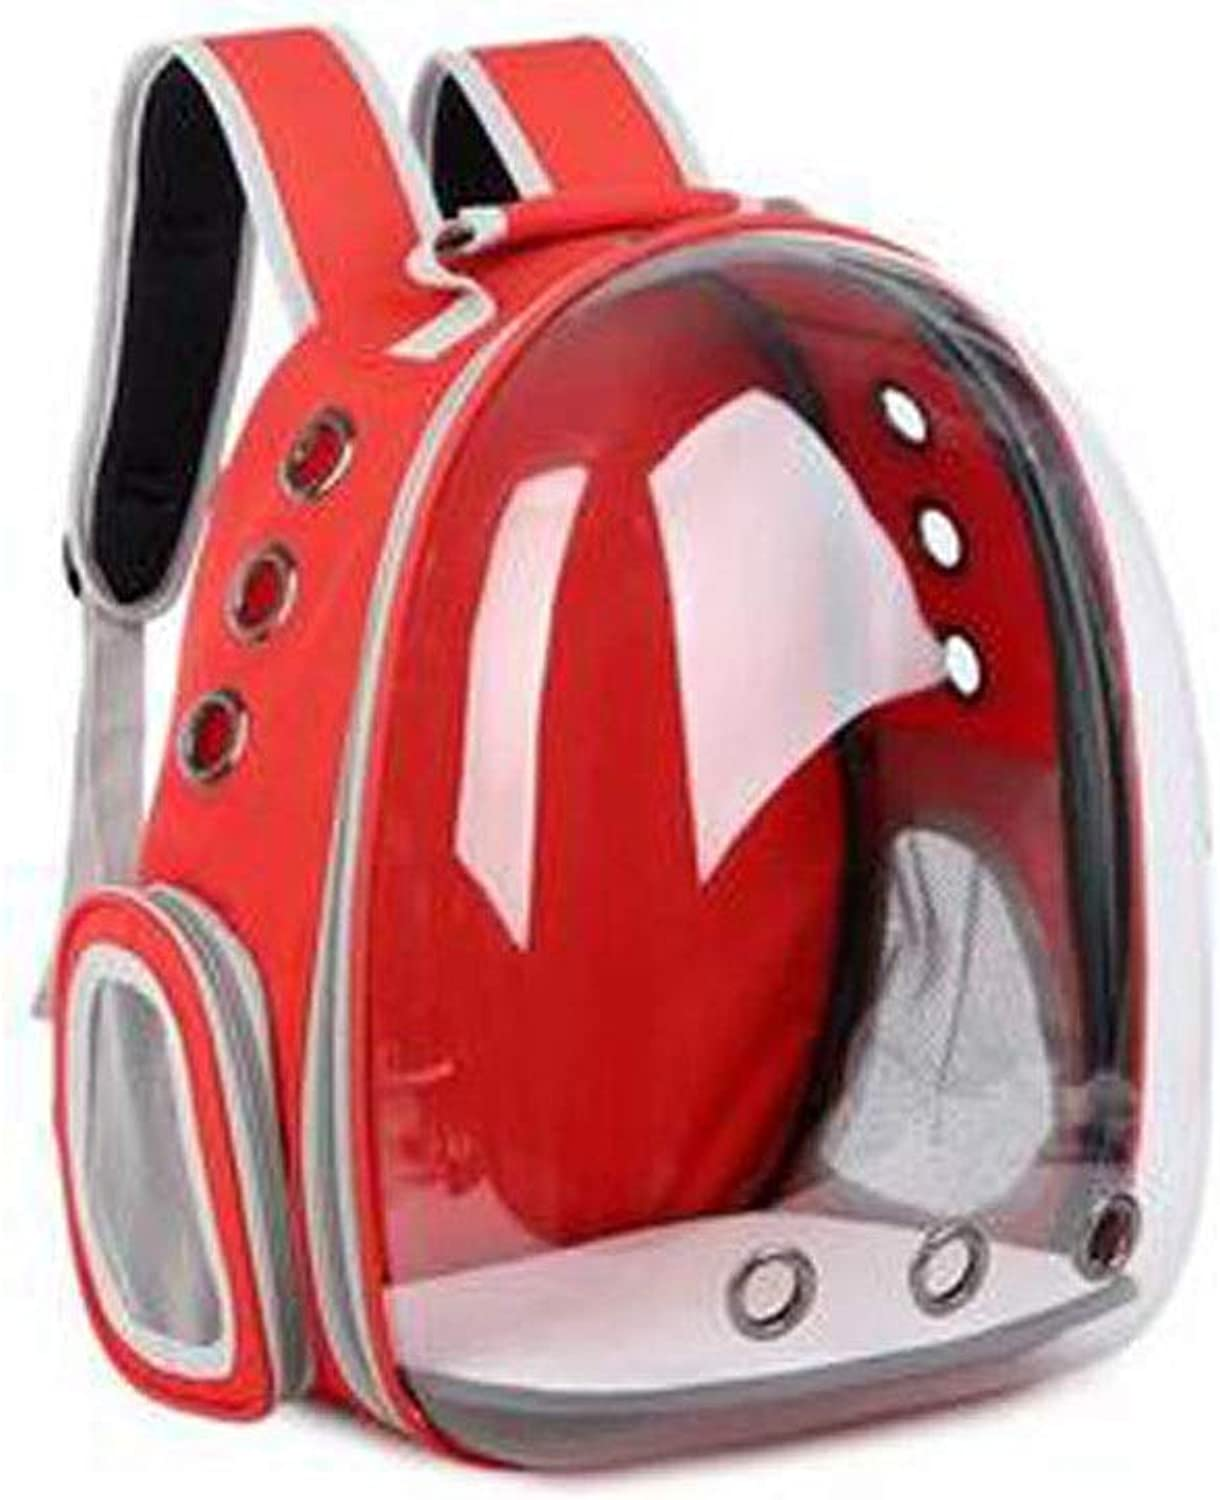 Chenjinxiang01 A Backpack Carried Outside The Pet, The Space Capsule Is Suitable For Small Dogs, Transparent Waterproof Pet Backpacks. (color   Red)